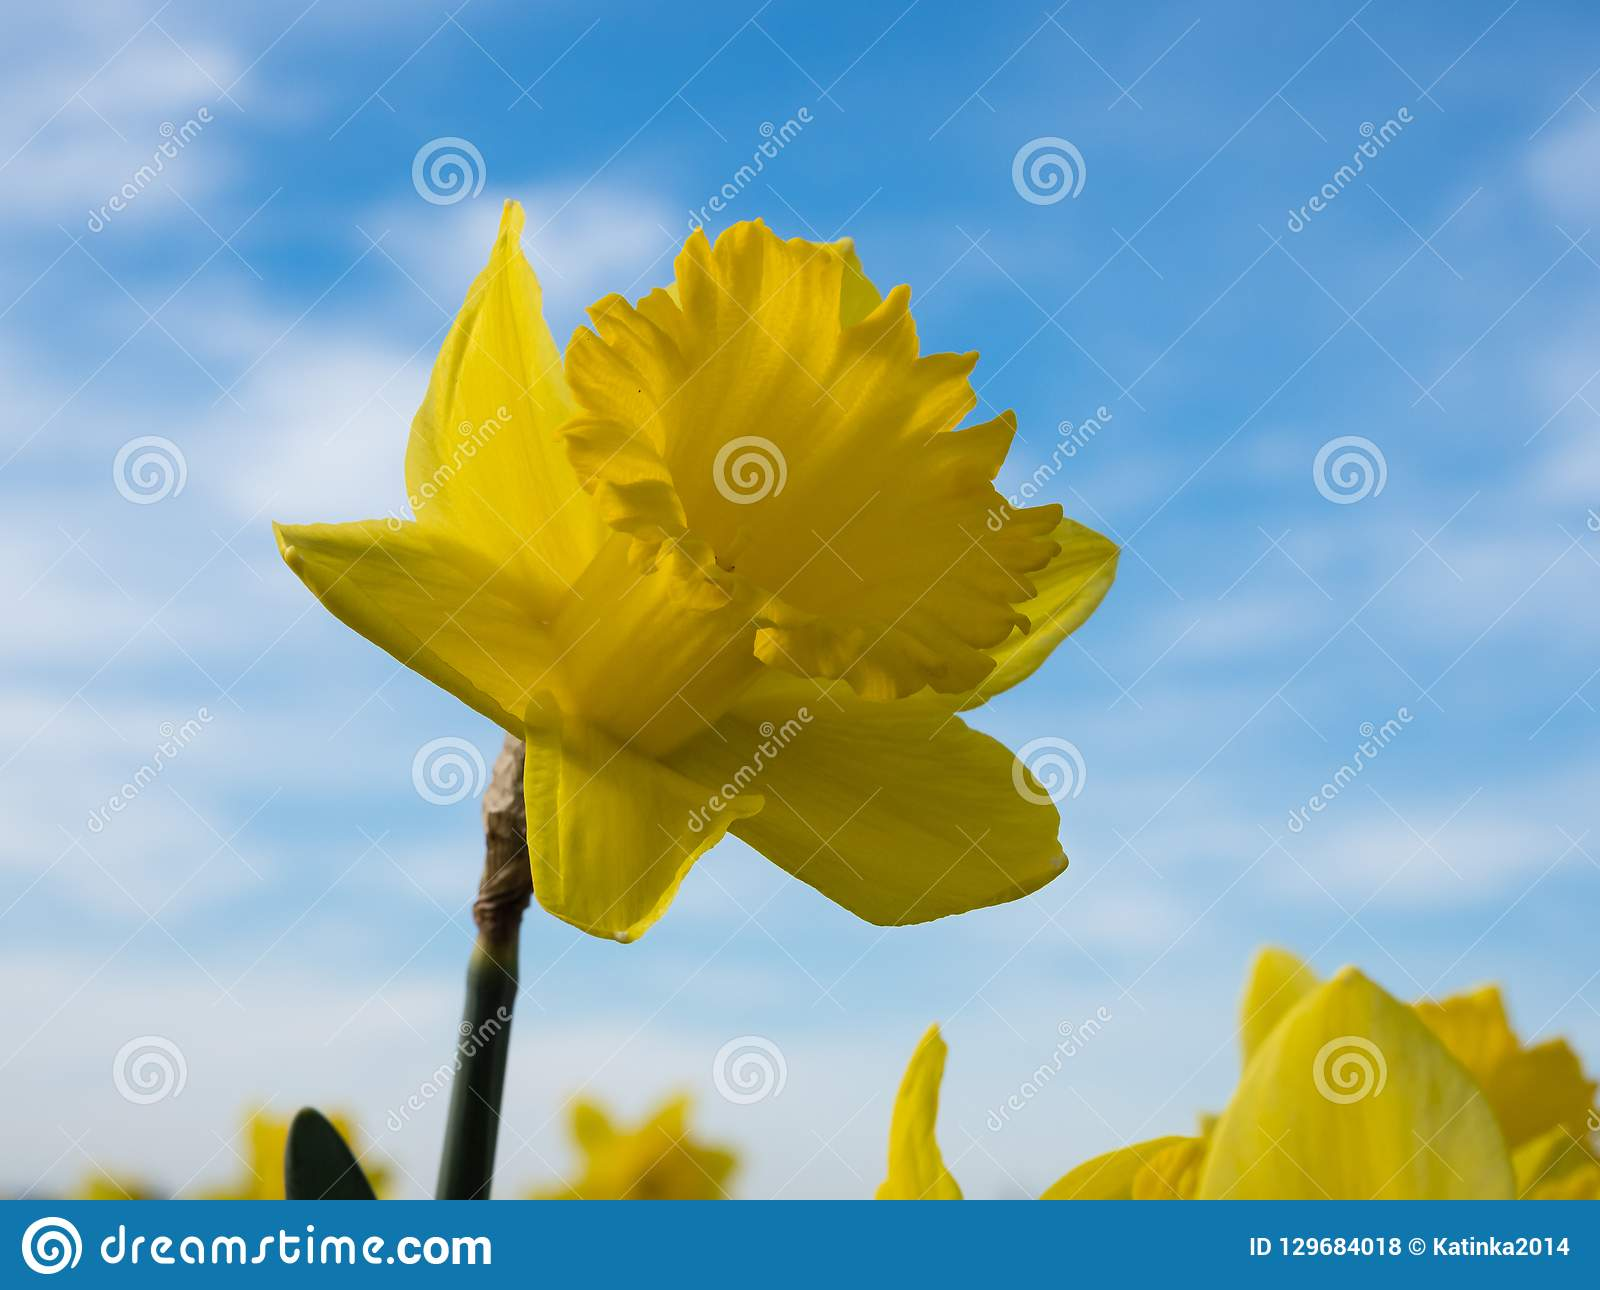 Yellow daffodil growing on a field against blue sky